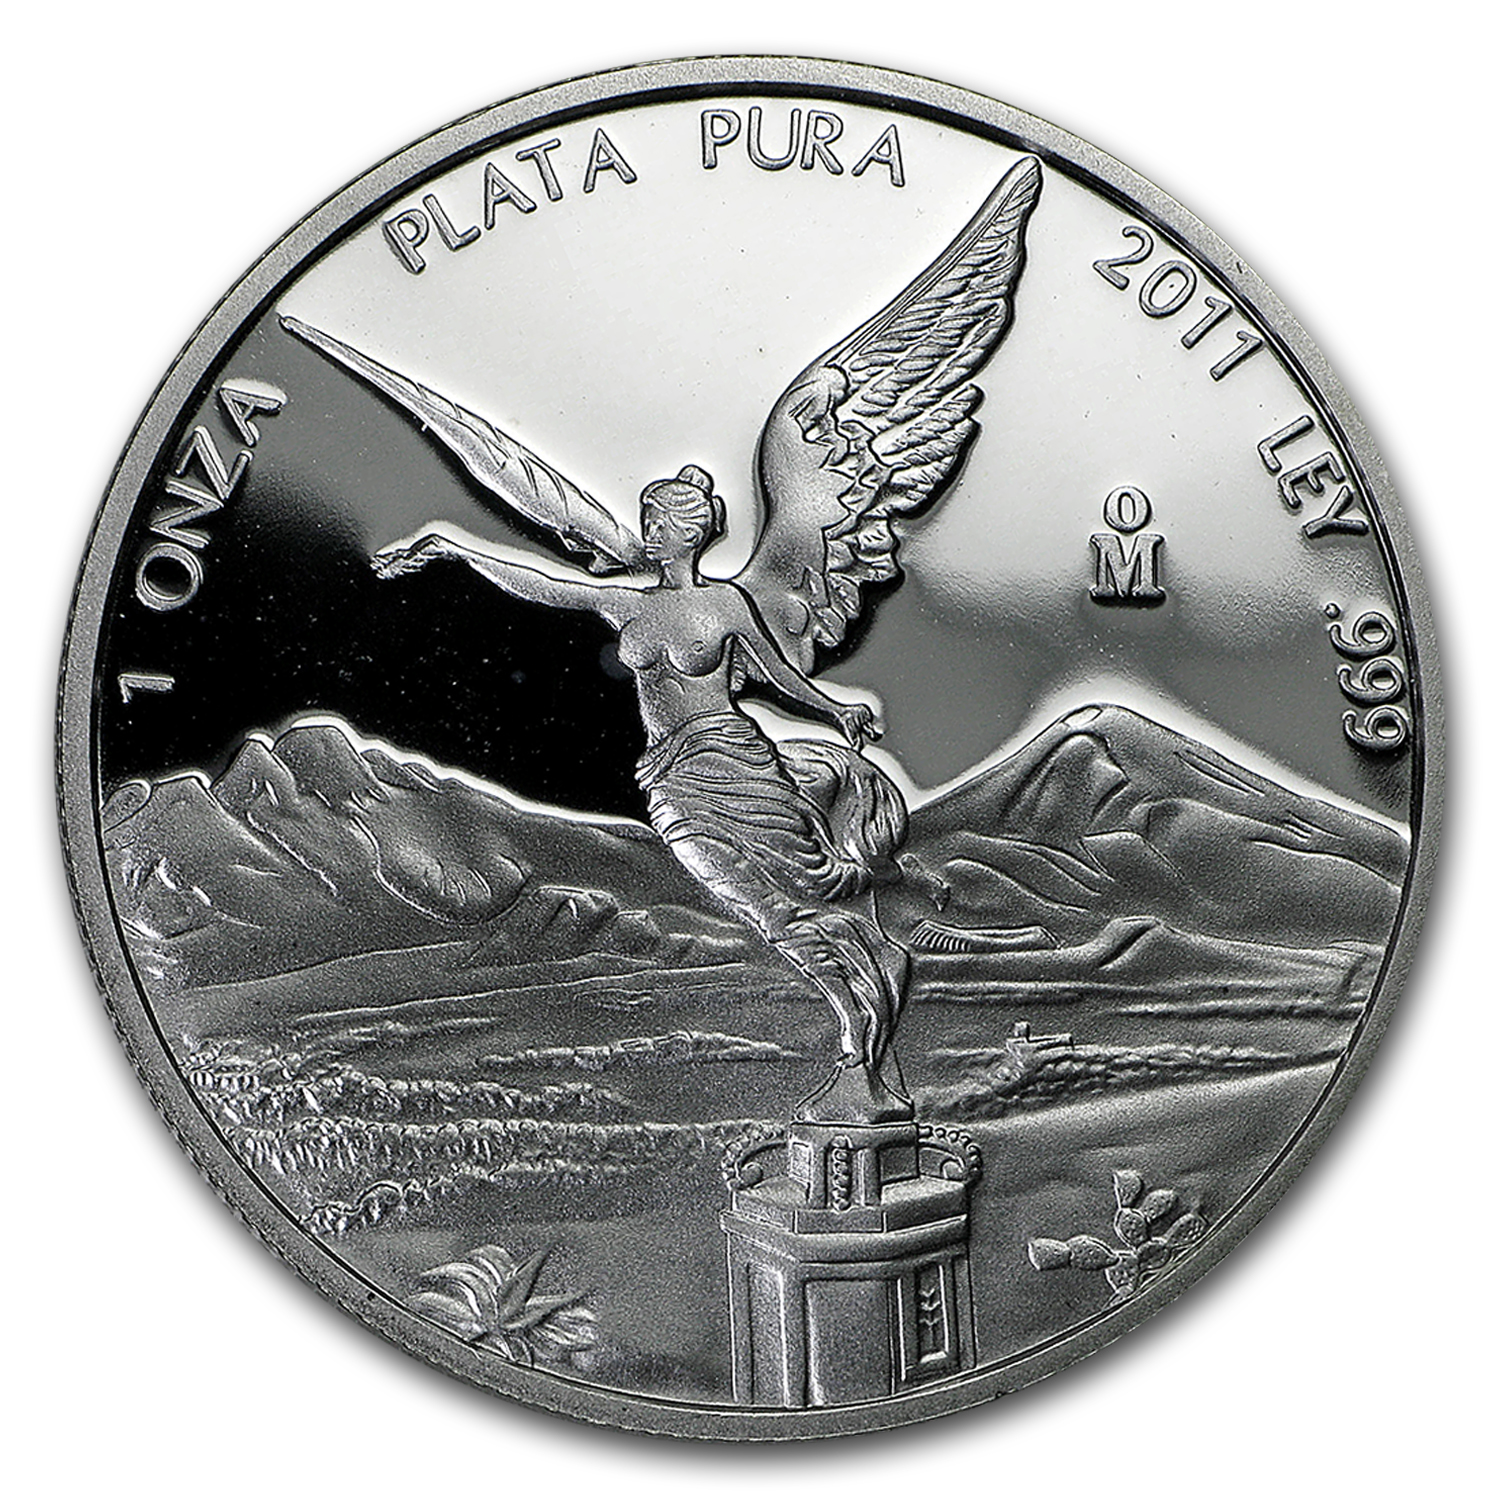 2011 Mexico 1 oz Silver Libertad Proof (In Capsule)